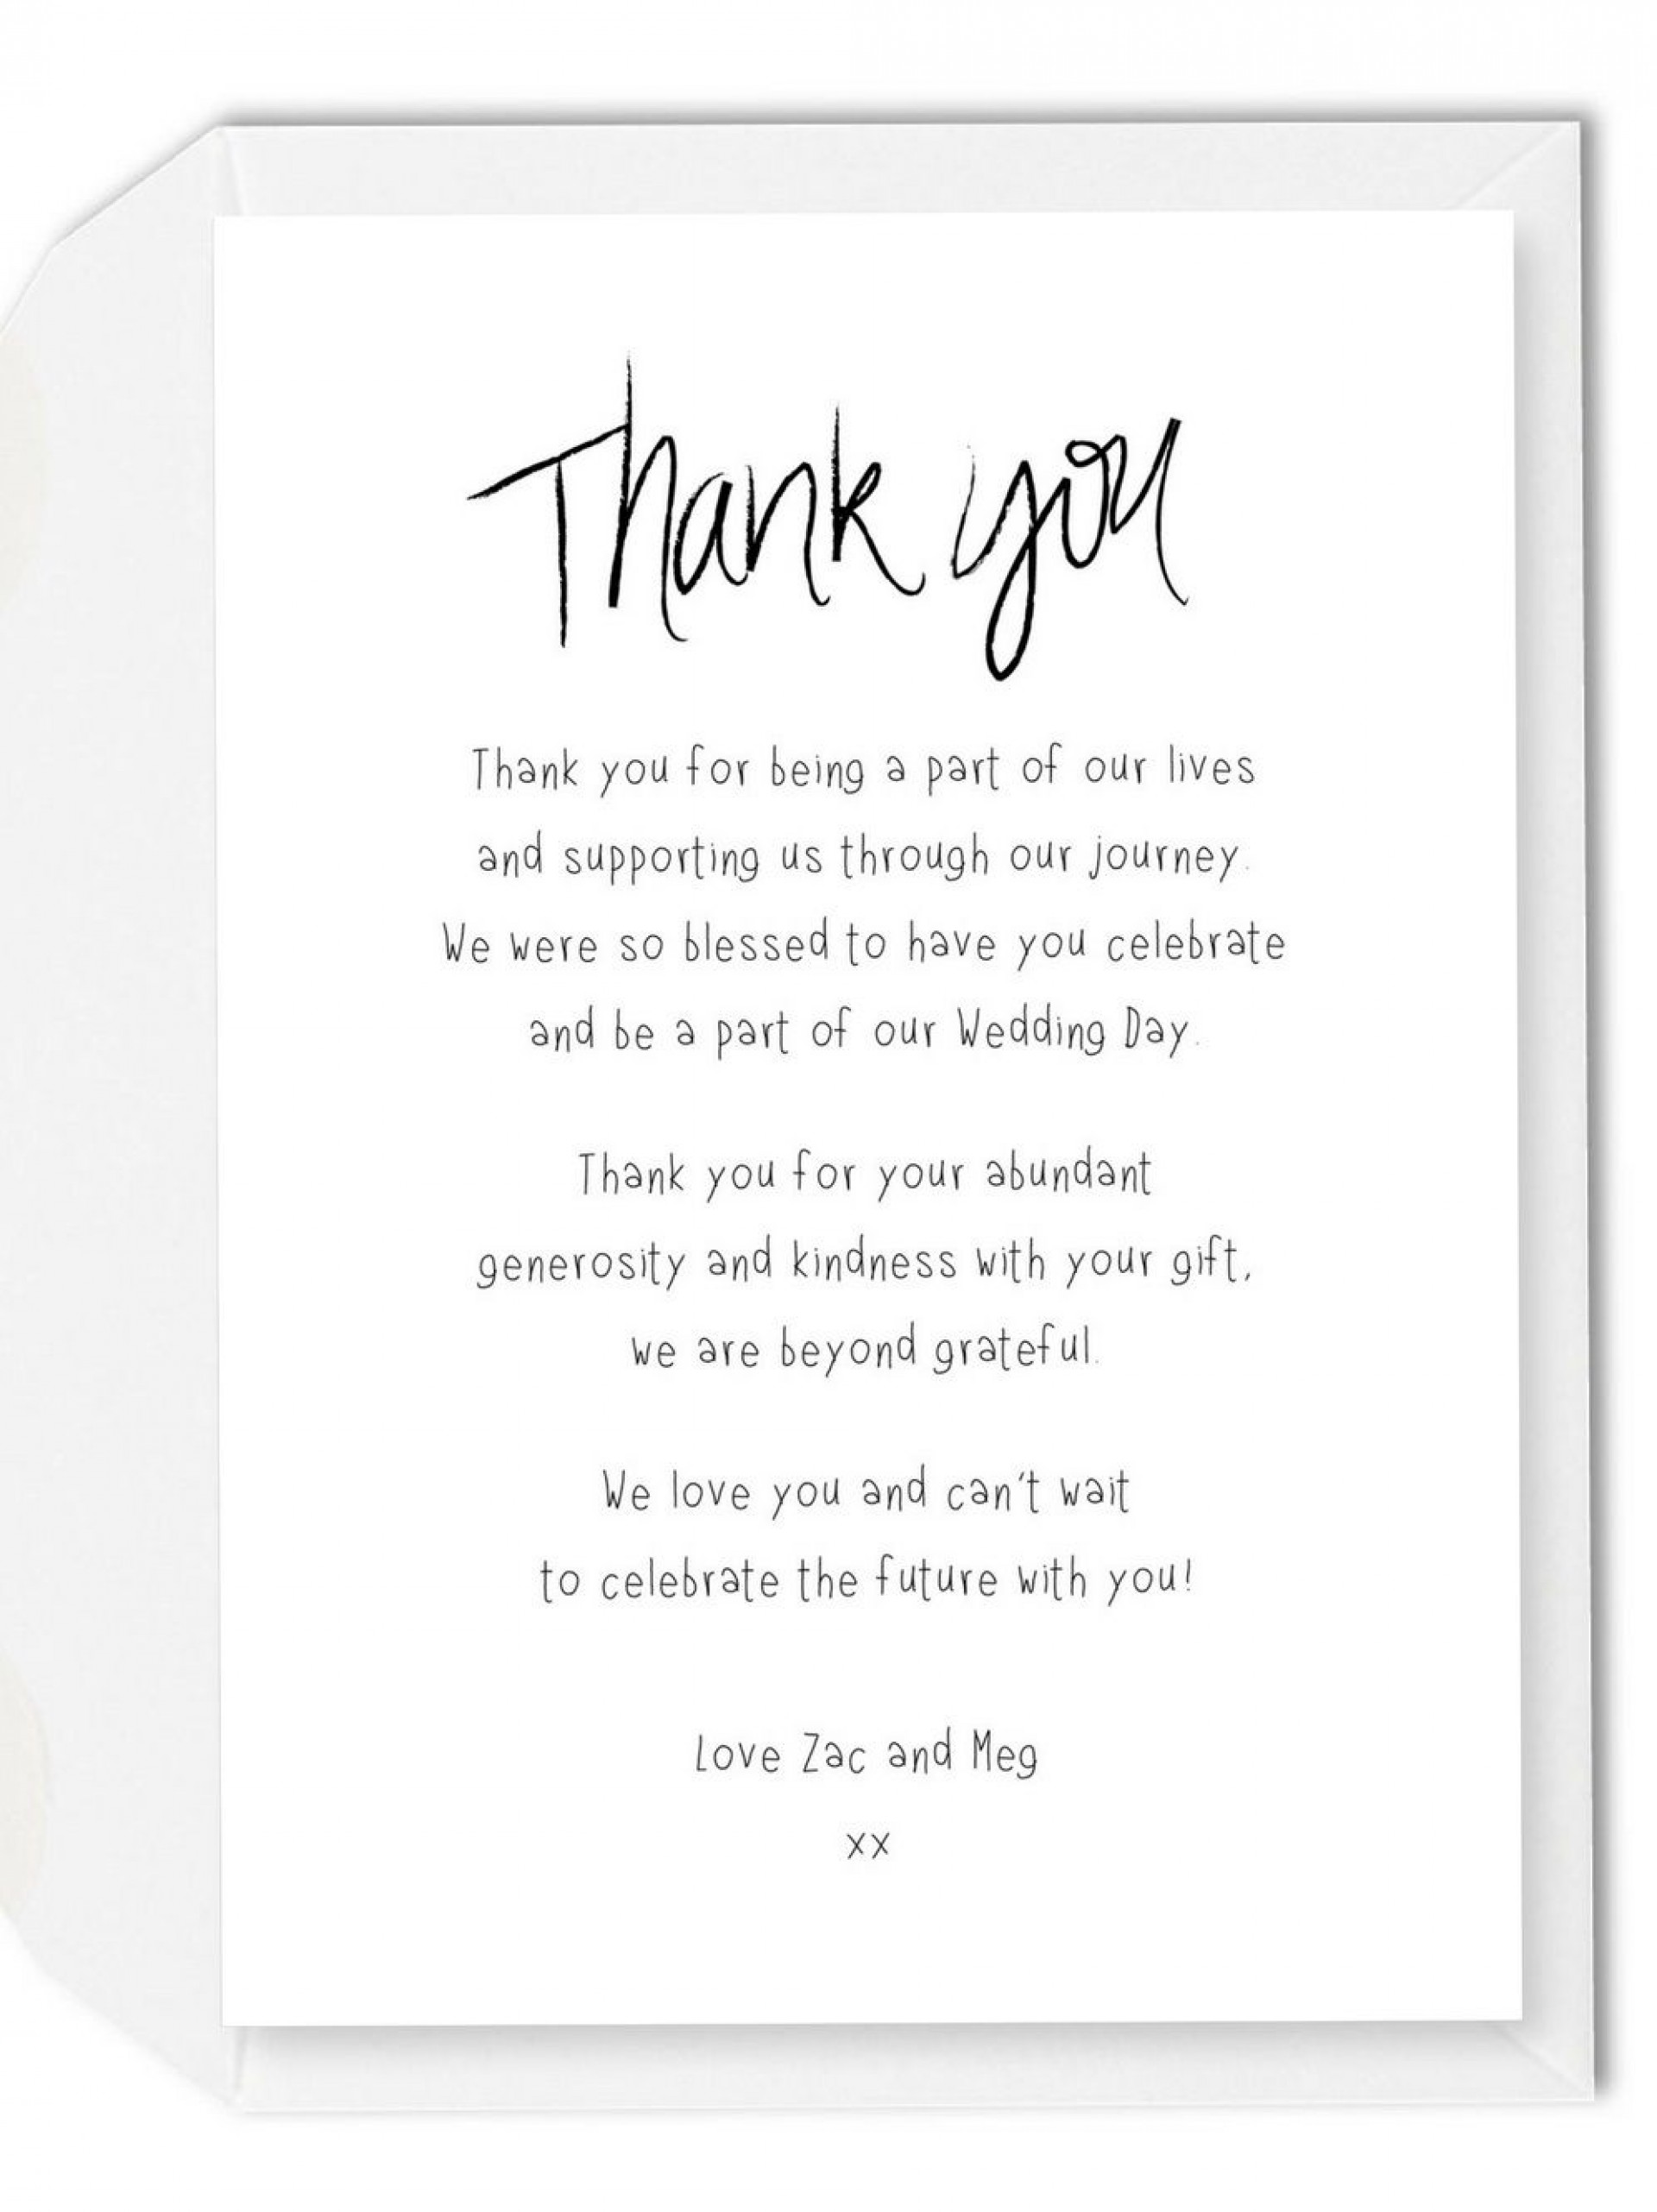 002 Imposing Wedding Thank You Note Template Picture  Example Wording Sample For Money Gift Shower1920